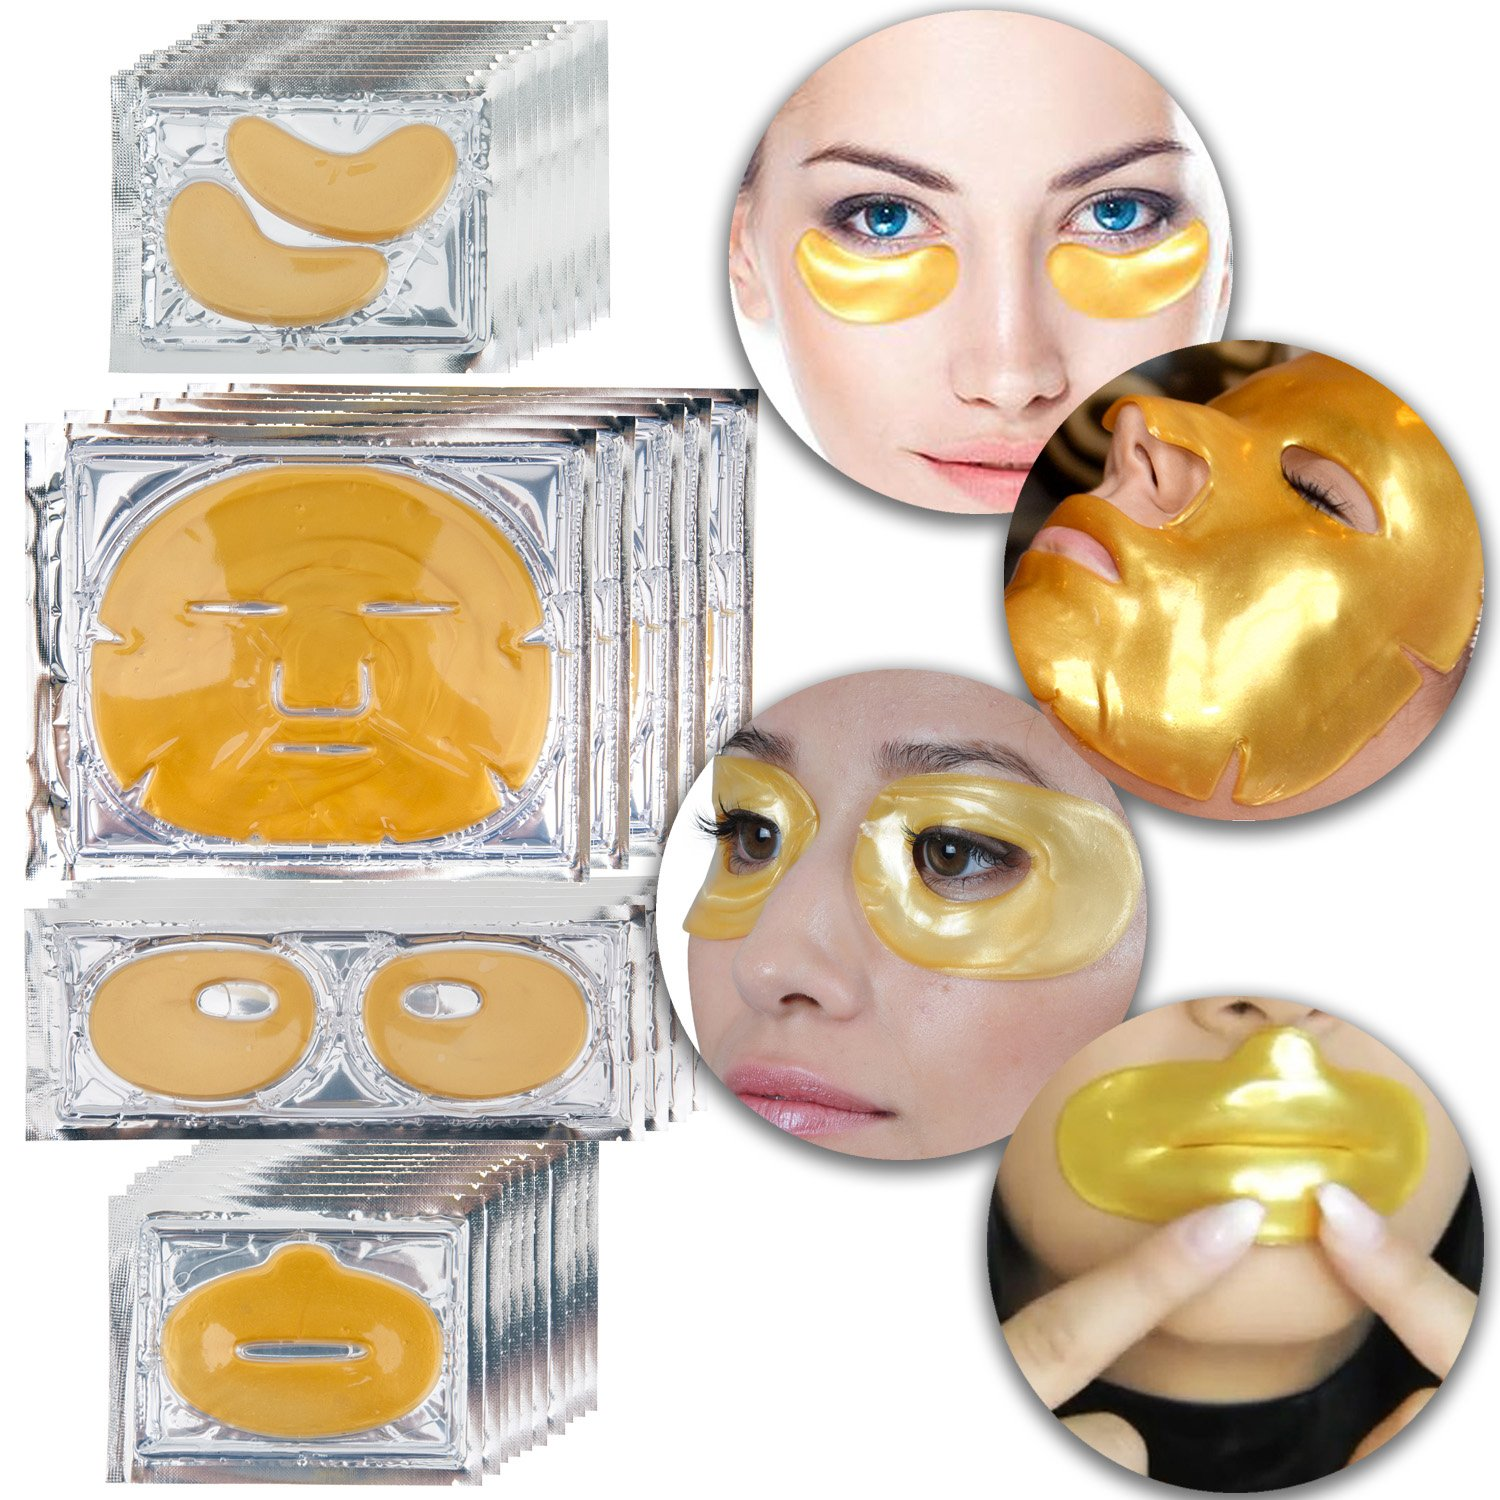 Anti Aging Set Kit Lot of 24 K Gold Golden Collagen Gel Crystal Masks Patches Sheets for Face, Lips, Eyes, Eyelids Fine Lines and Wrinkles Removal, Moisturizing Hydration, Skin Firming and Nourishing VAGA